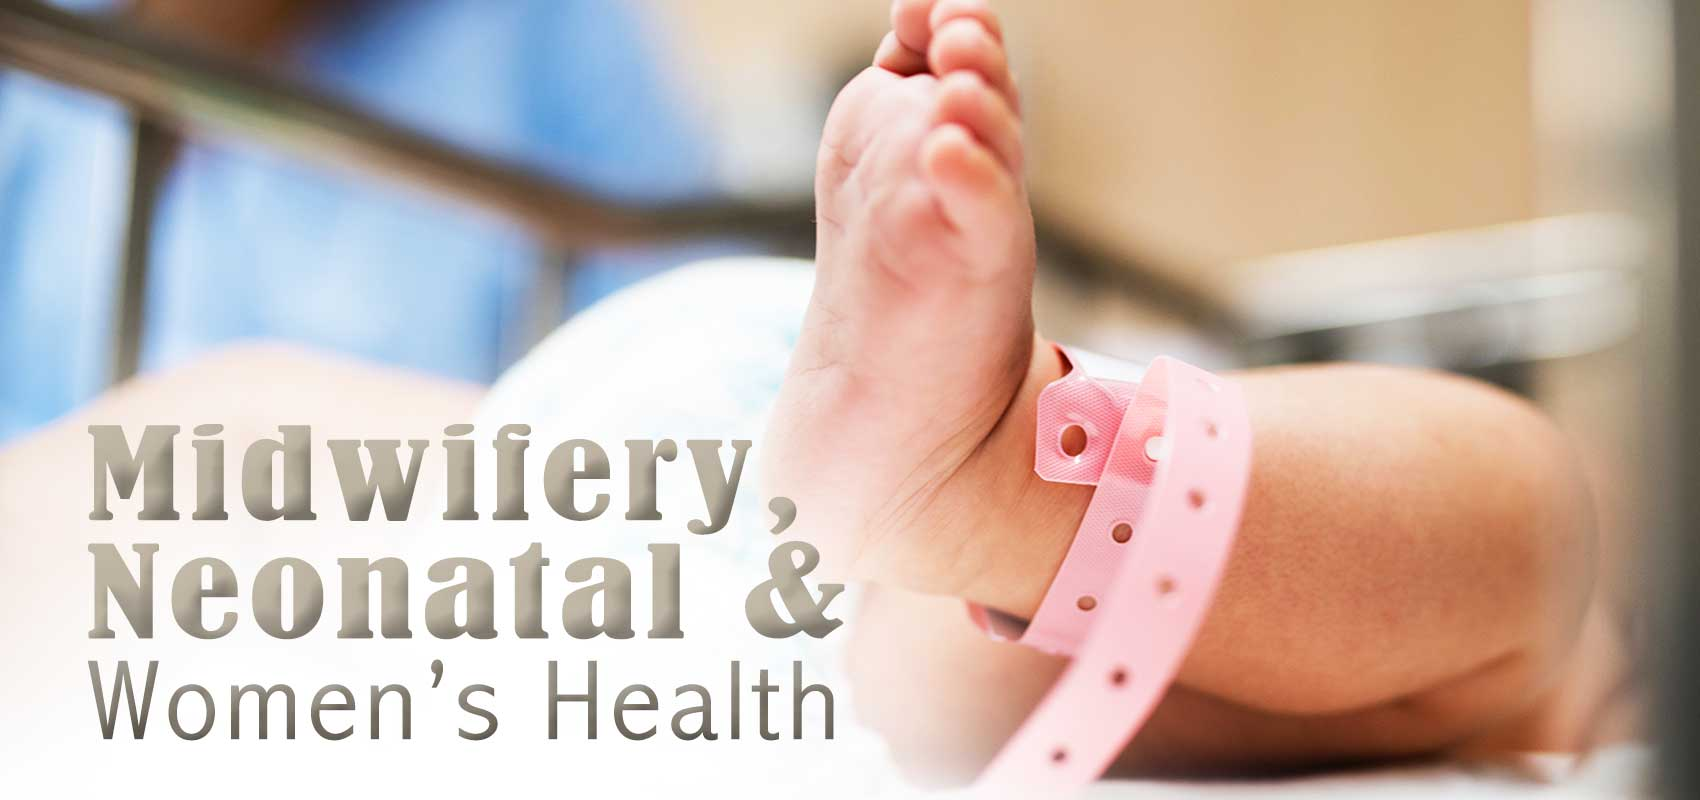 Midwifery, Neonatal and Women's Health